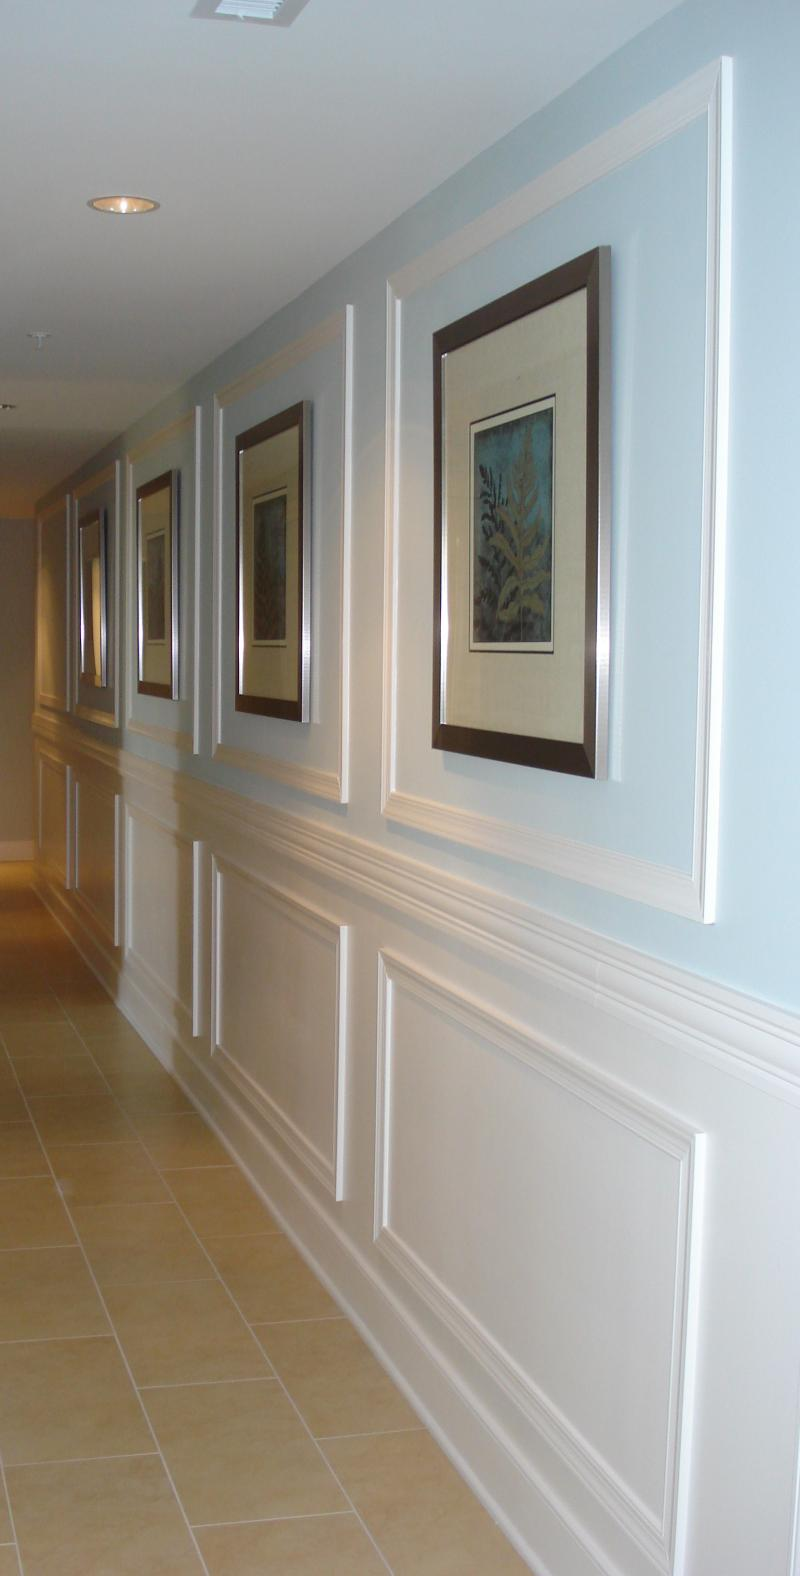 CHAIR RAIL AND MOULDING CREATE DRAMATIC HALLWAY